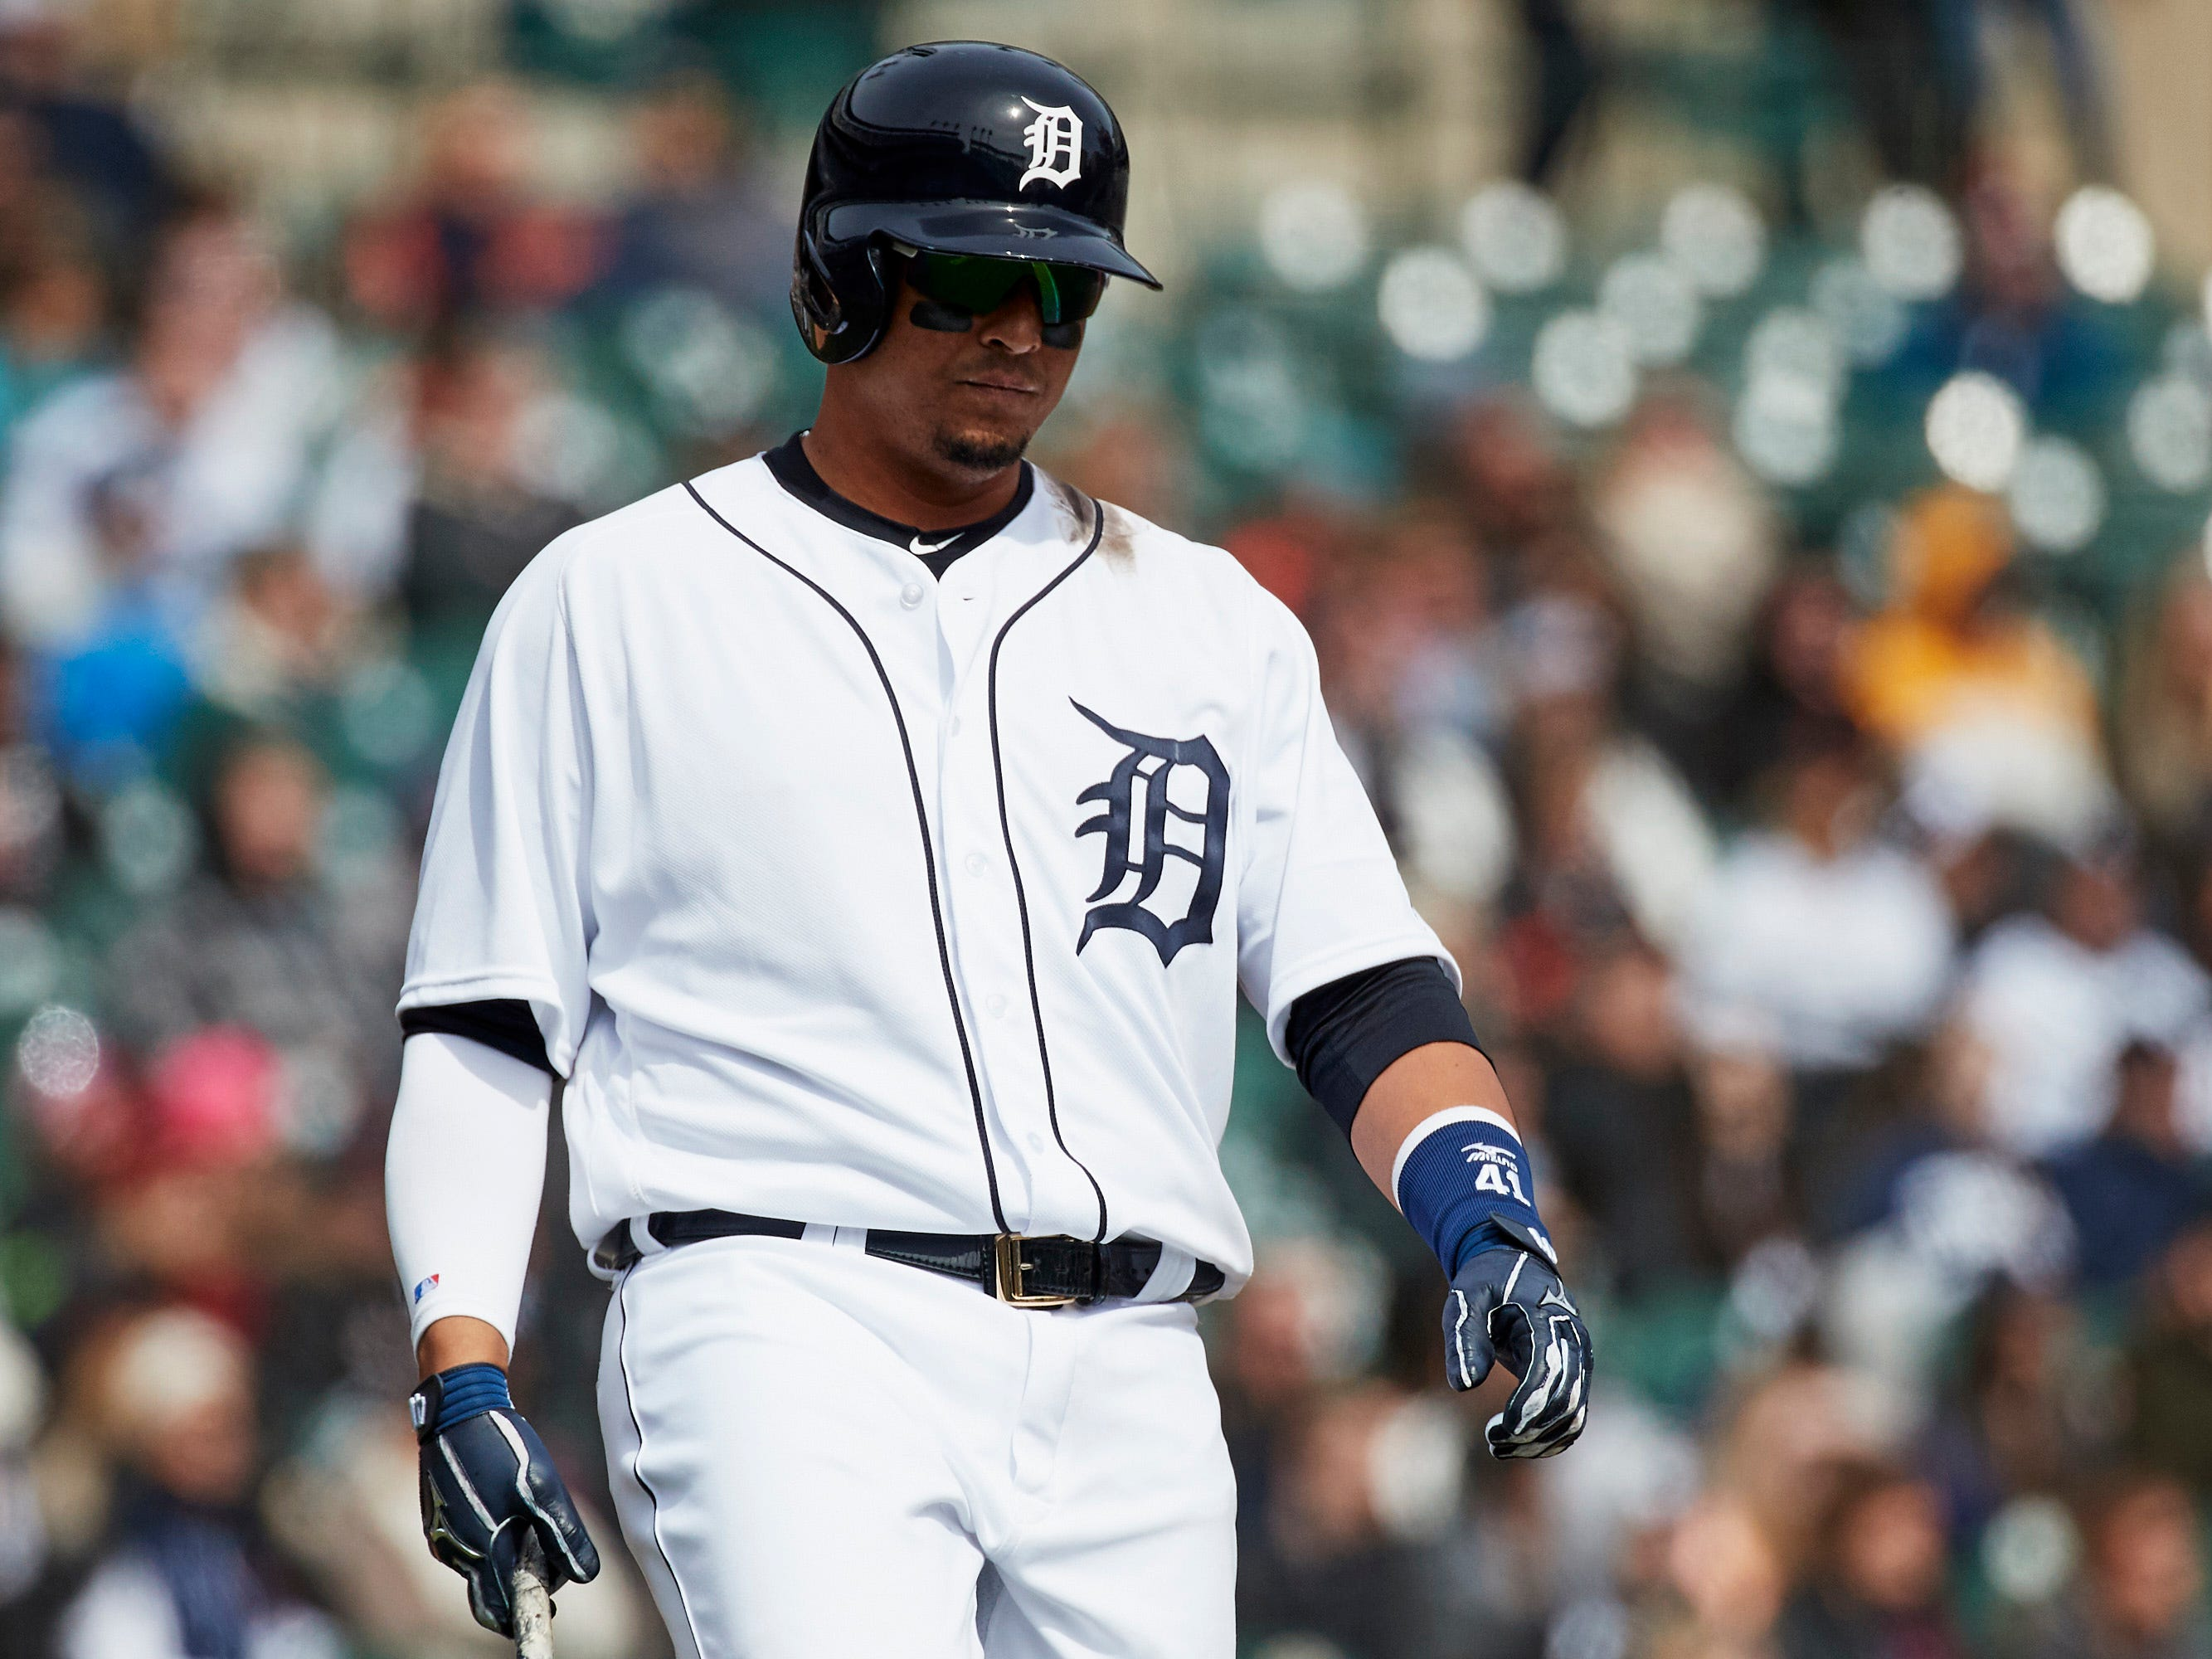 April 1 in Detroit: Pirates 1, Tigers 0. Victor Martinez reacts after he flies out in the seventh inning at Comerica Park.